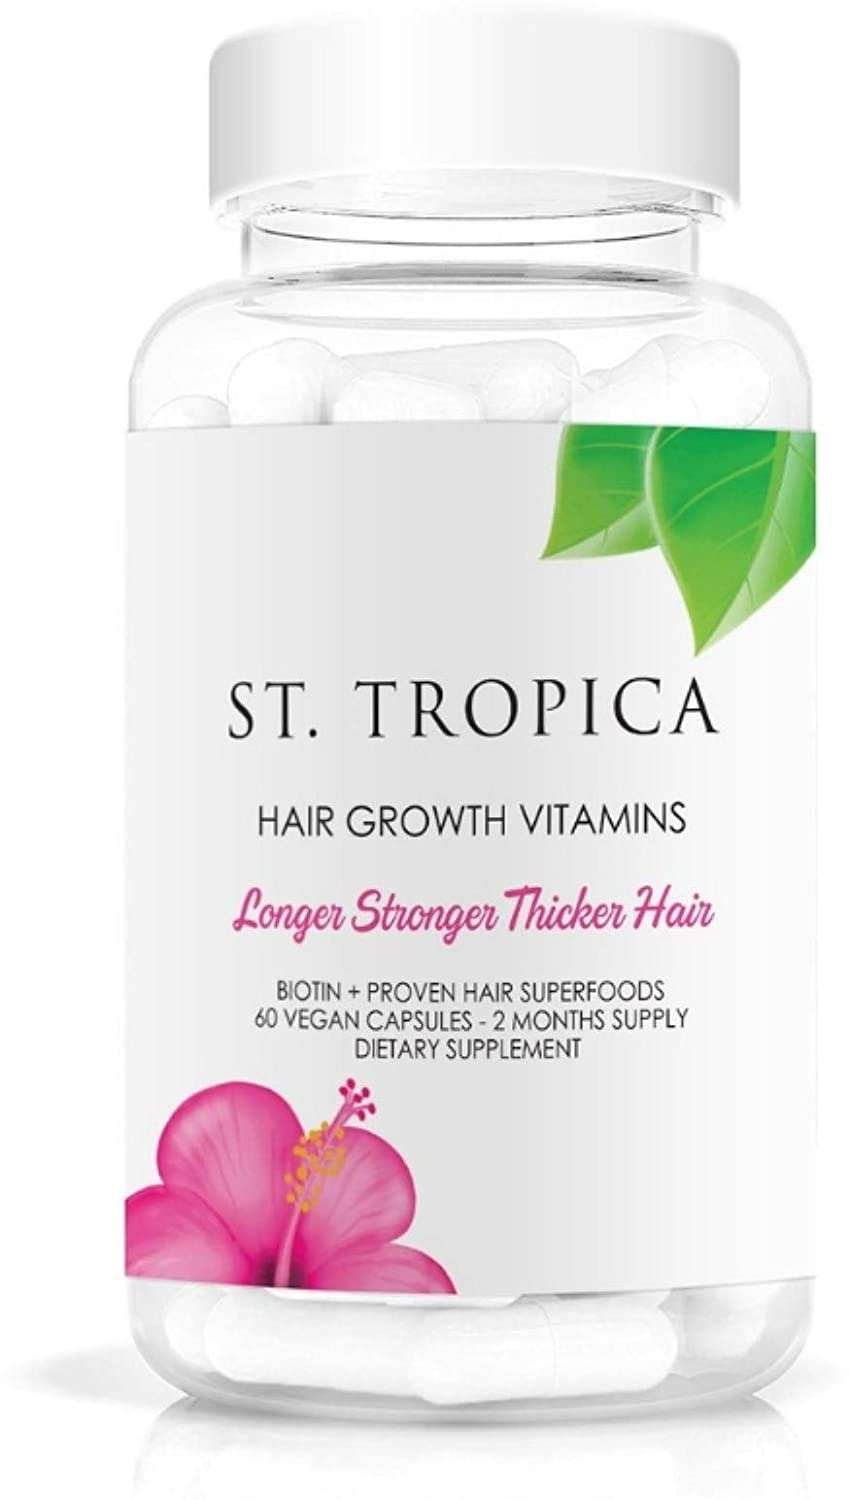 ST. TROPICA Hair Vitamins for Hair Growth Treatment - Superfood Formula Helps Prevent Hair Loss & Thinning, Proteins & Minerals for Longer, Stronger, Thicker Hair - VEGAN - (Acai Berry) 60-Count